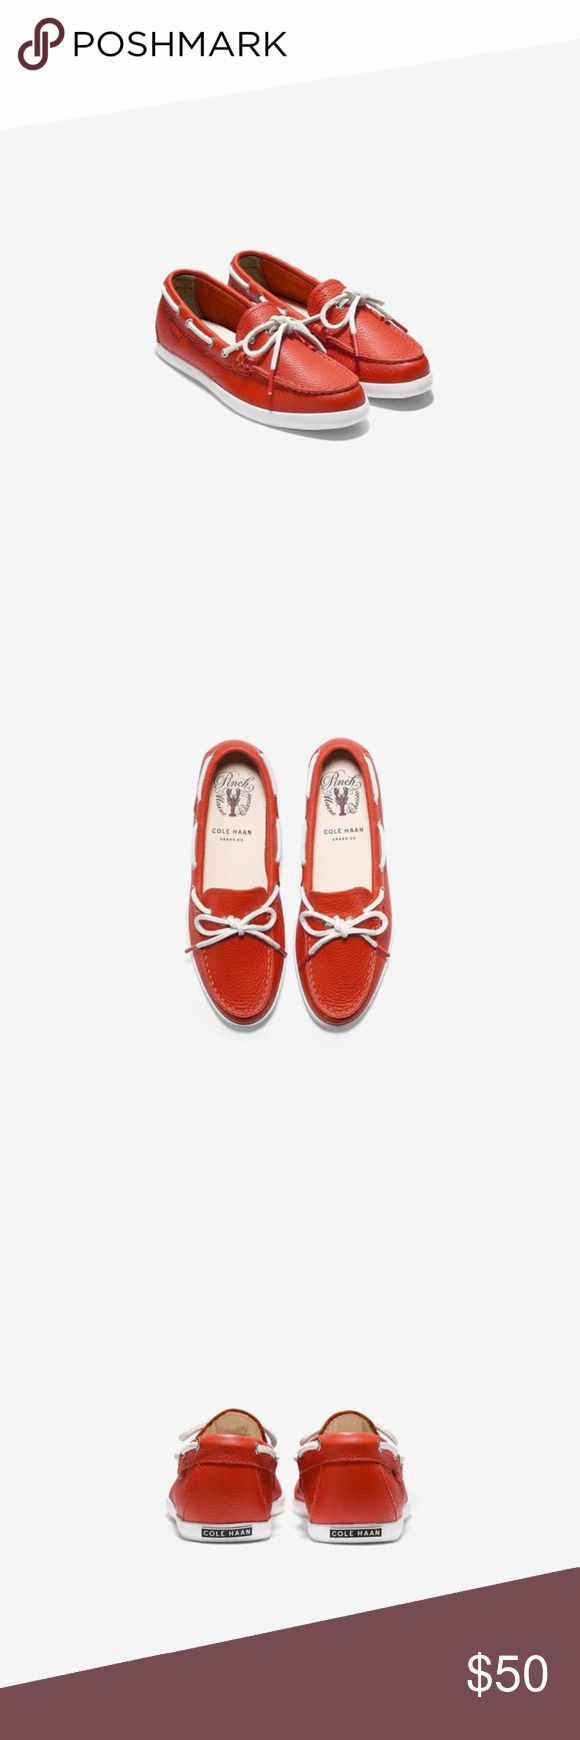 Cole Haan Women's Pinch Weekender Camp Moc - Citru Cole Haan Women's Pinch Weekender Camp Moc - Citrus Red Leather Sale price Cole Haan Shoes